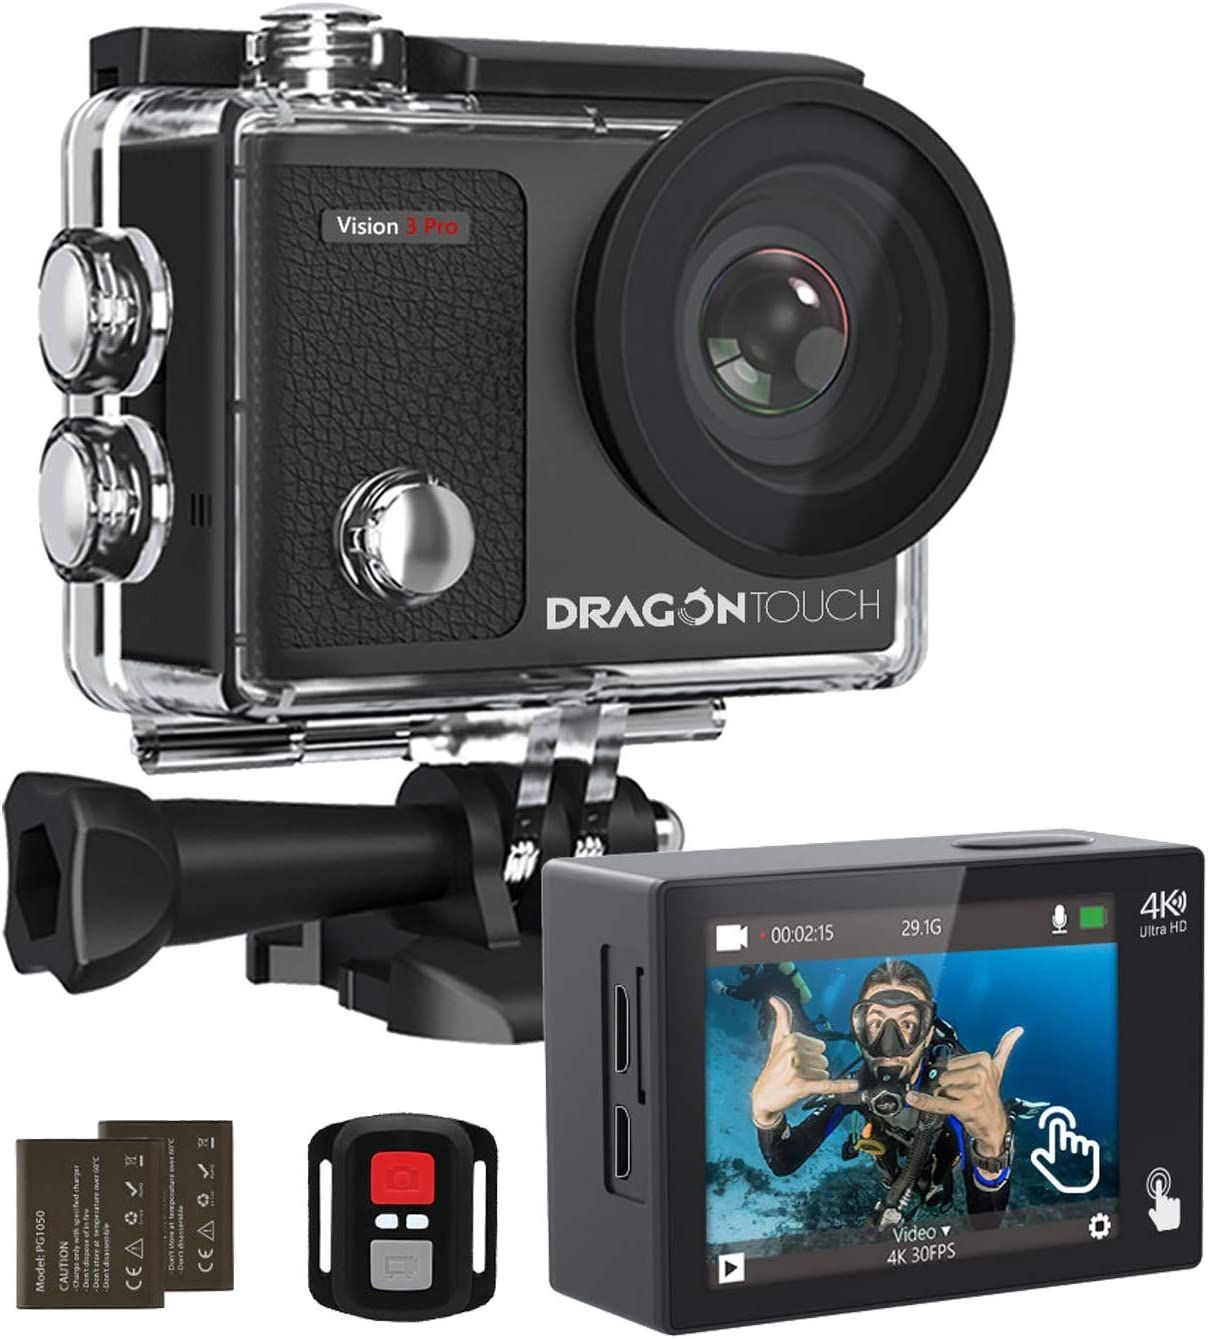 Dragon Touch 4K Action Camera Touch Screen 16MP Vision 3 Pro PC Web Camera 100 feet Waterproof Camera Adjustable View Angle WiFi Sports Camera with Remote Control and Helmet Accessories Kit : Electronics